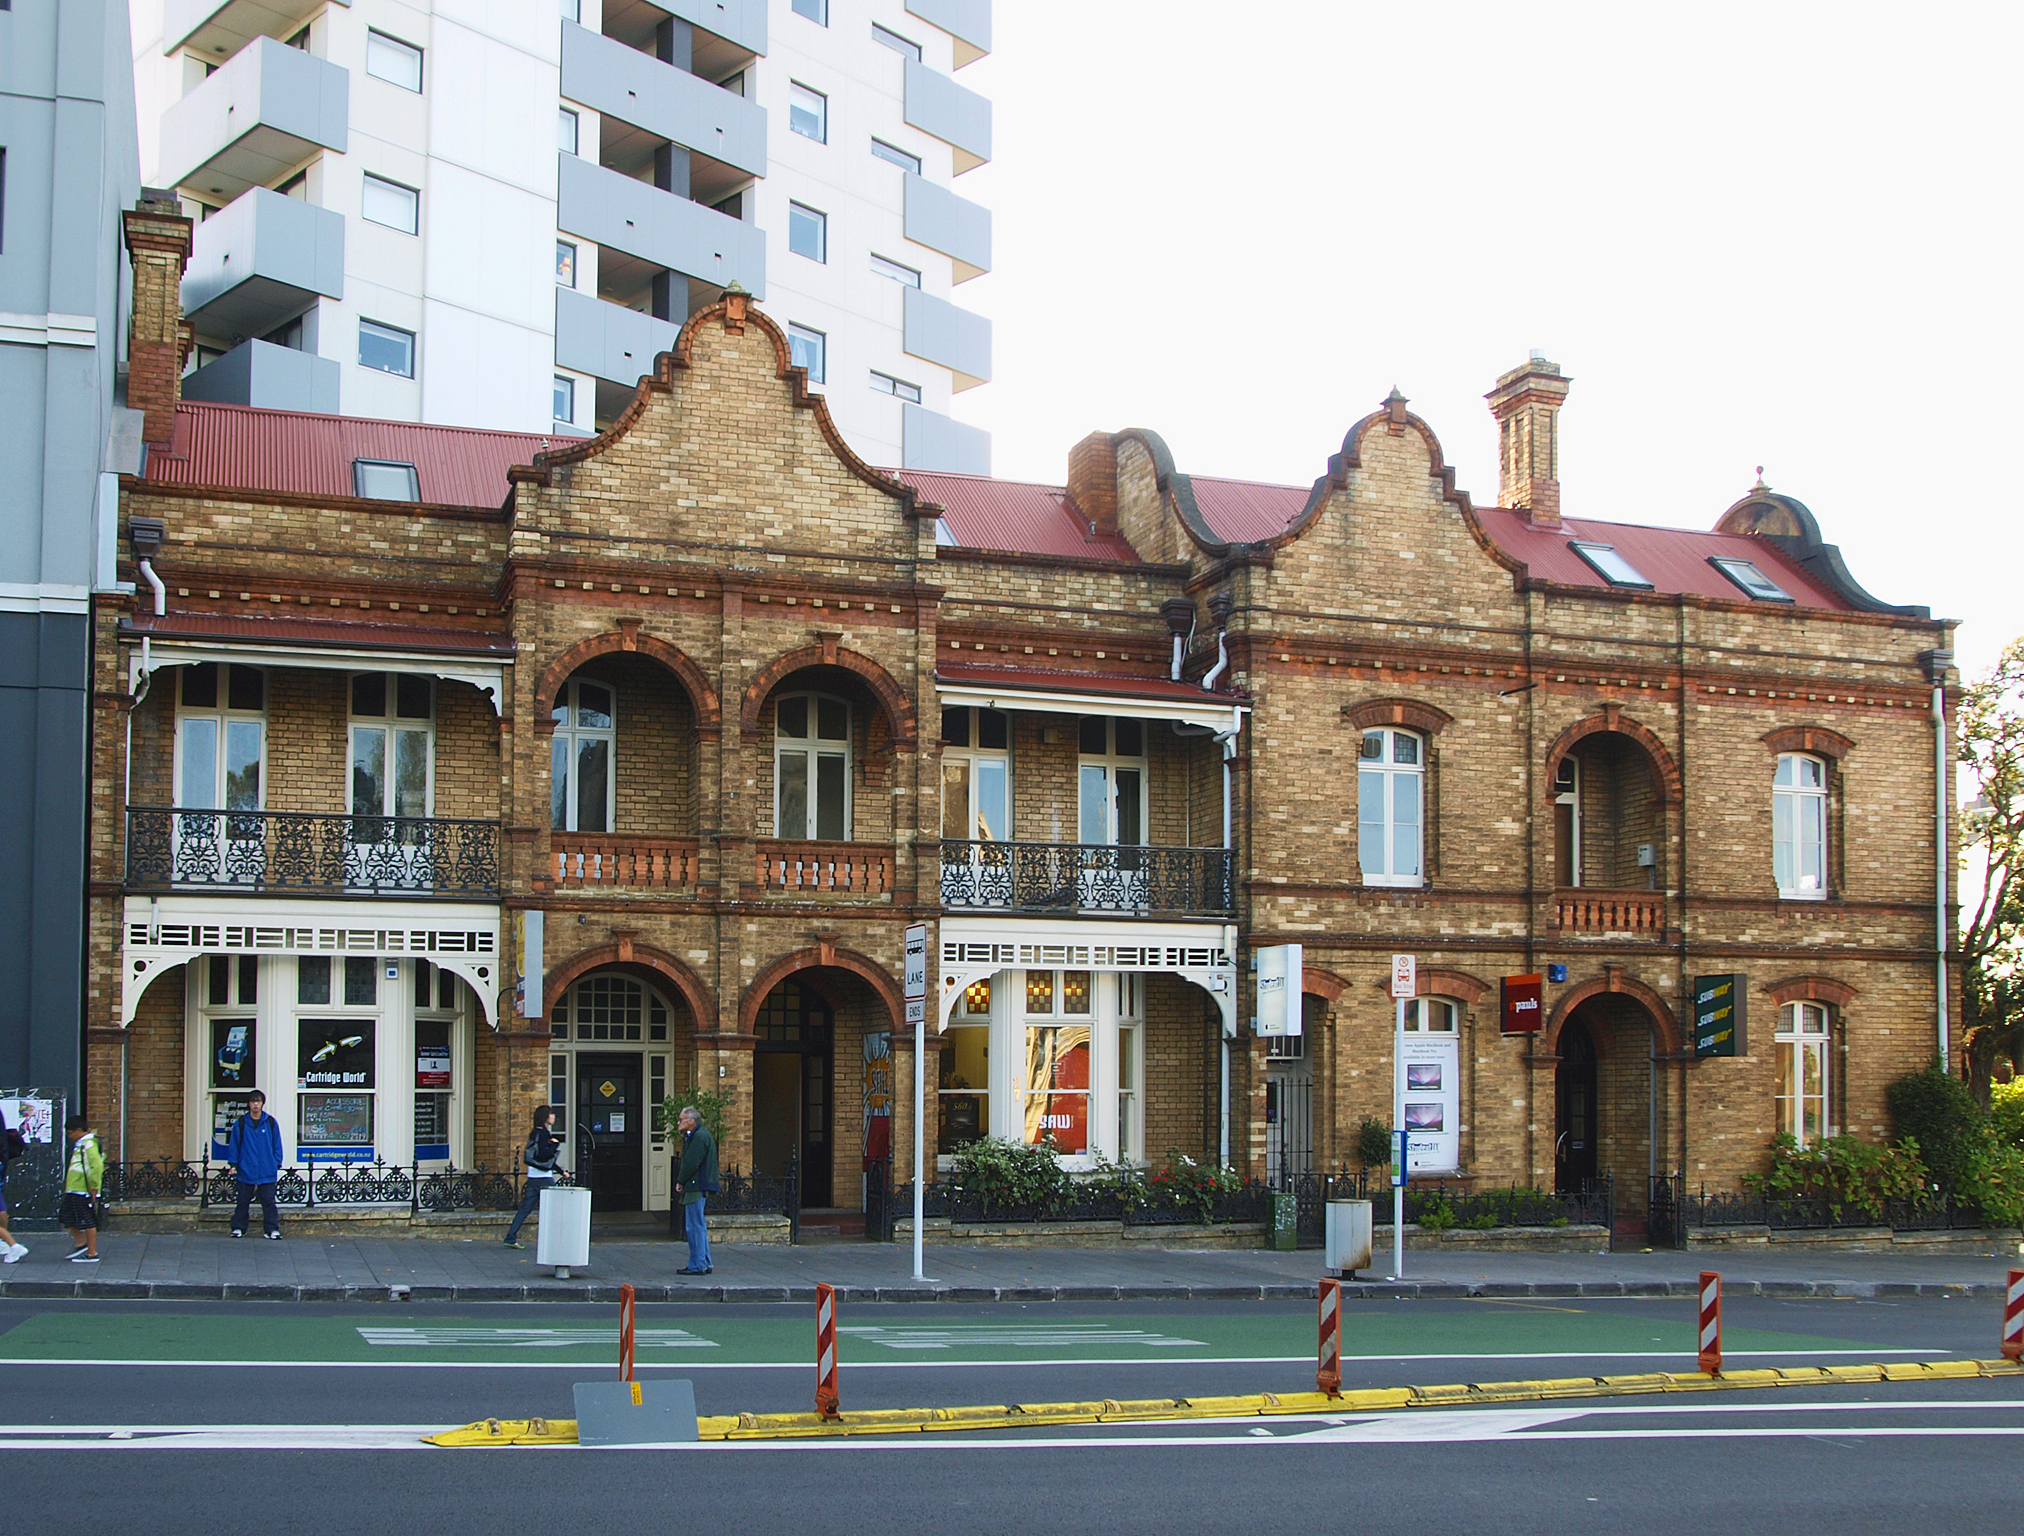 File:Terrace Houses Auckland.jpg - Wikimedia Commons